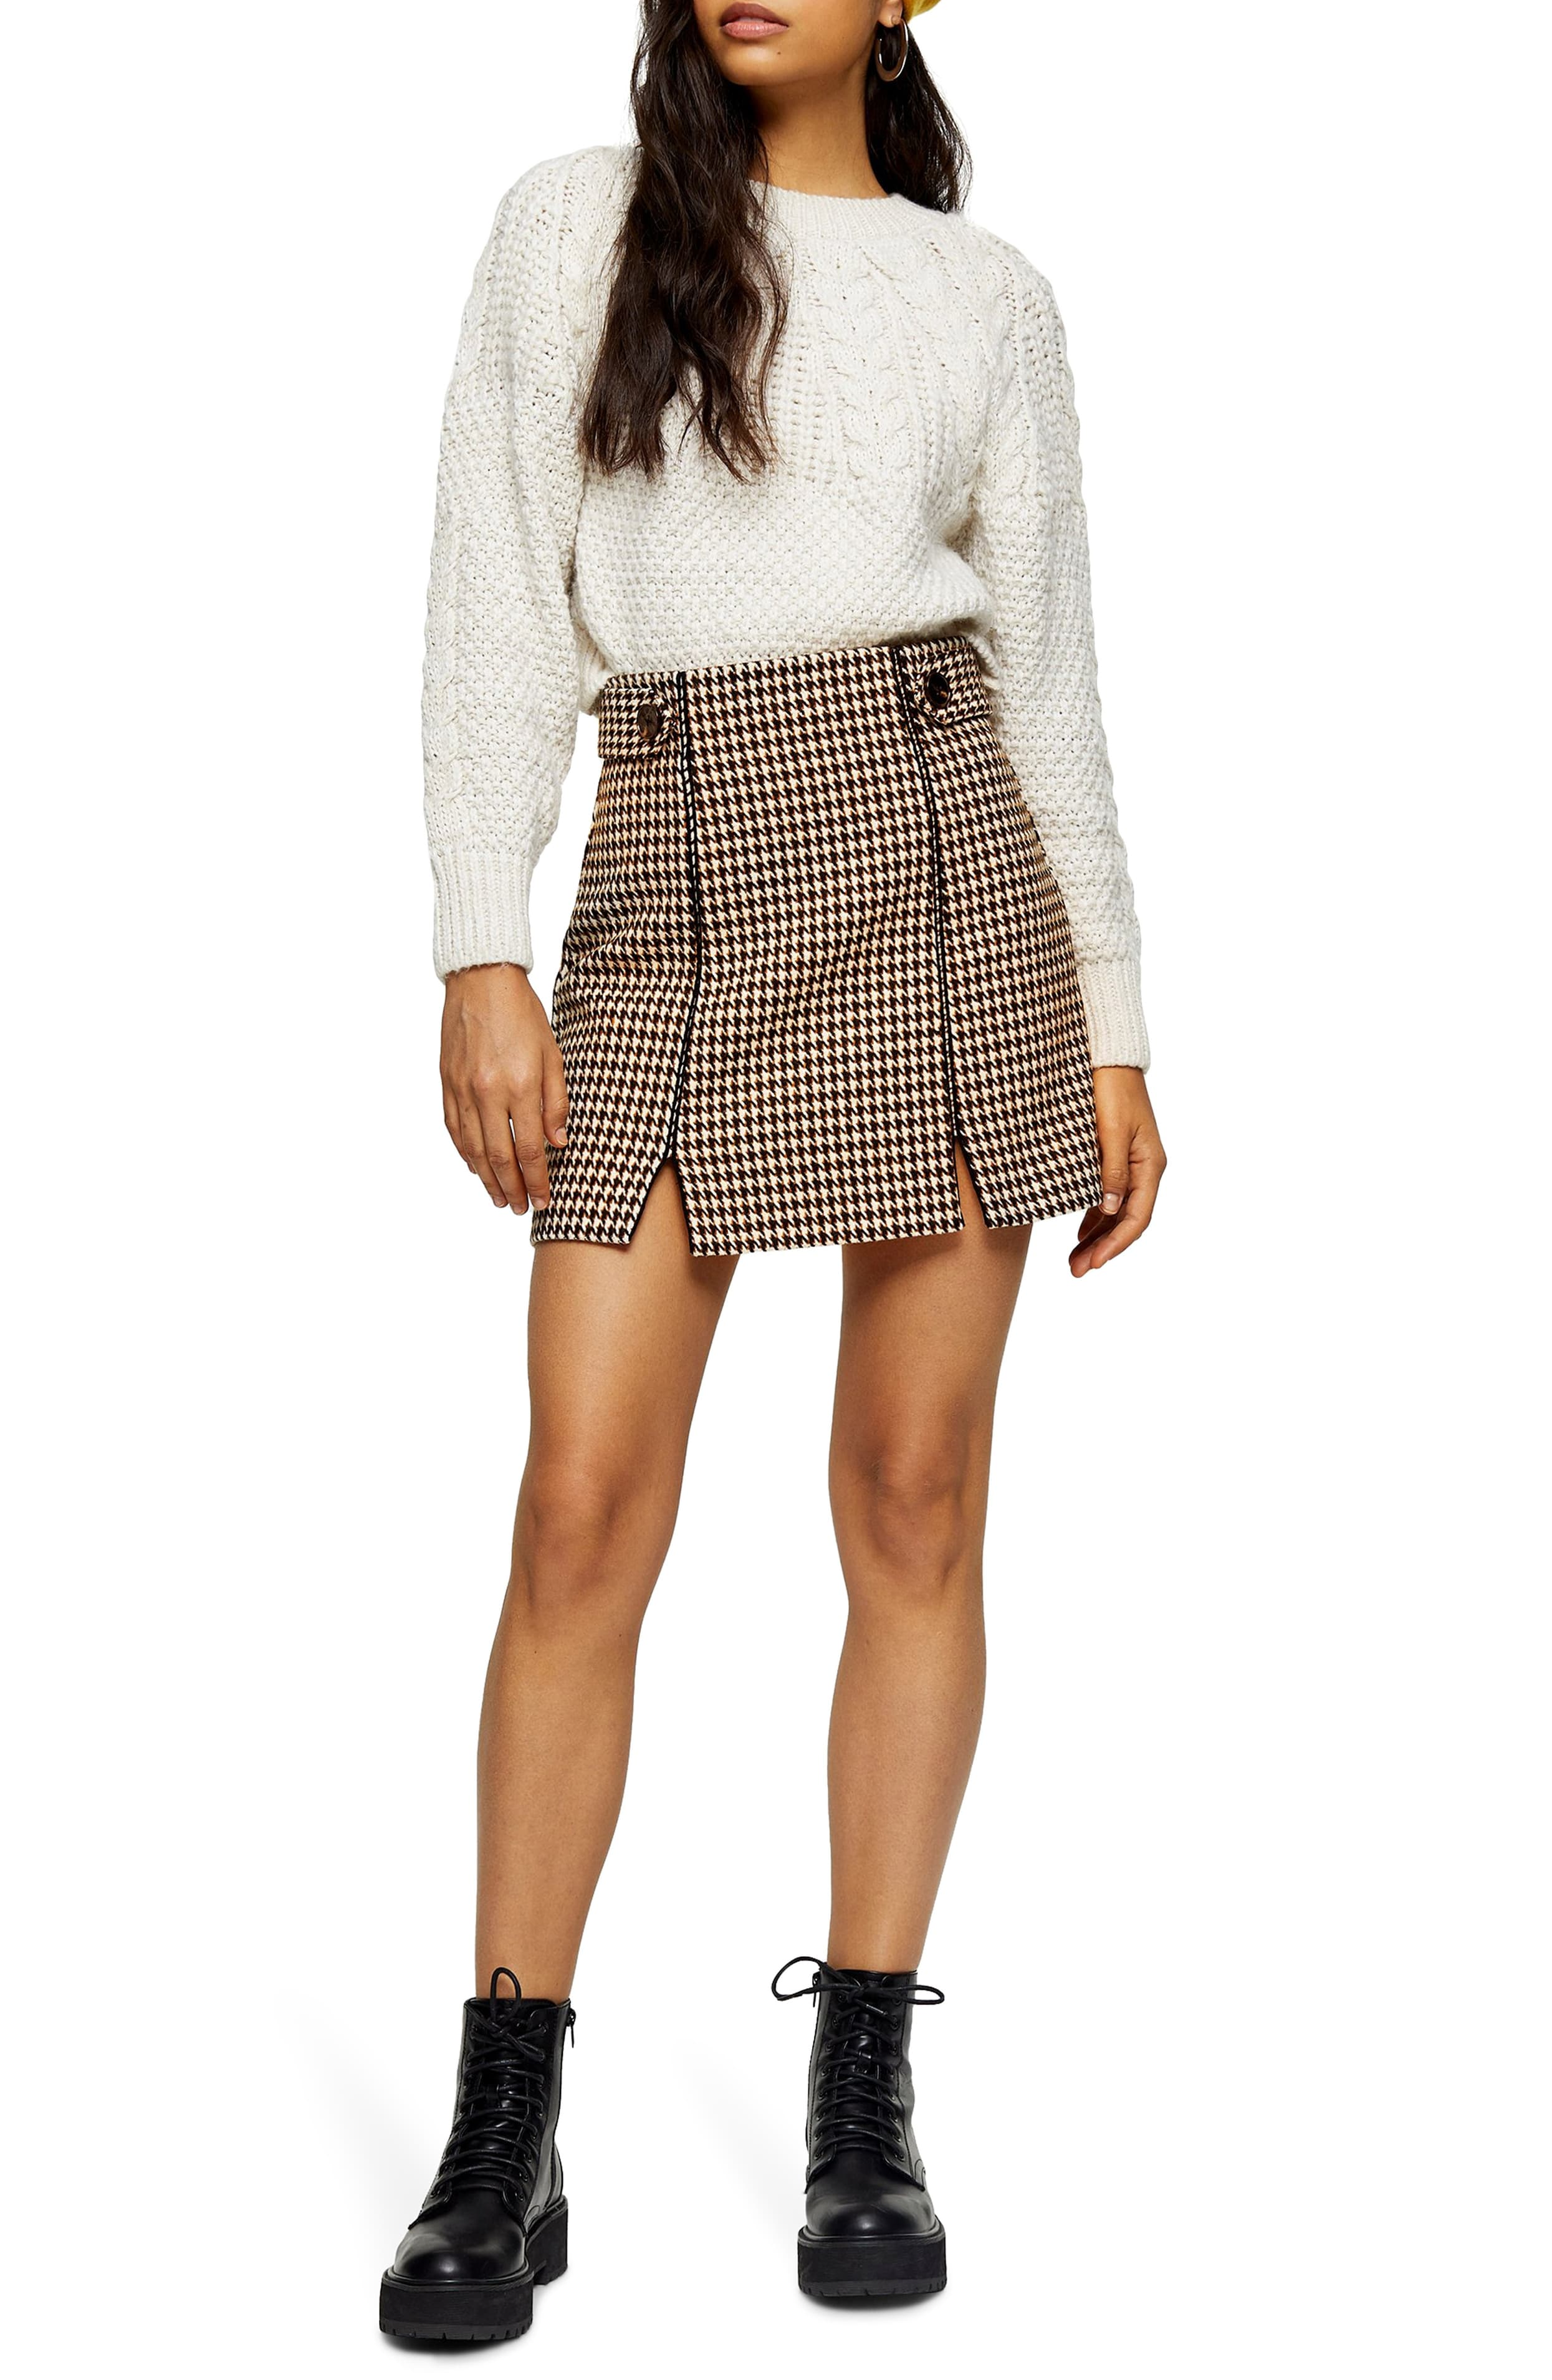 "<p>A houndstooth pattern adds old-school charm to a miniskirt completed with a flirty split hemline. $60{&nbsp;}</p><p><a  href=""https://shop.nordstrom.com/s/topshop-houndstooth-miniskirt/5501119/full?origin=category-personalizedsort&breadcrumb=Home%2FWomen%2FShop%20by%20Occasion%2FNight%20Out&color=cream%20multi"" target=""_blank"" title=""https://shop.nordstrom.com/s/topshop-houndstooth-miniskirt/5501119/full?origin=category-personalizedsort&breadcrumb=Home%2FWomen%2FShop%20by%20Occasion%2FNight%20Out&color=cream%20multi"">Shop it{&nbsp;}</a></p><p>(Image: Nordstrom){&nbsp;}</p>"